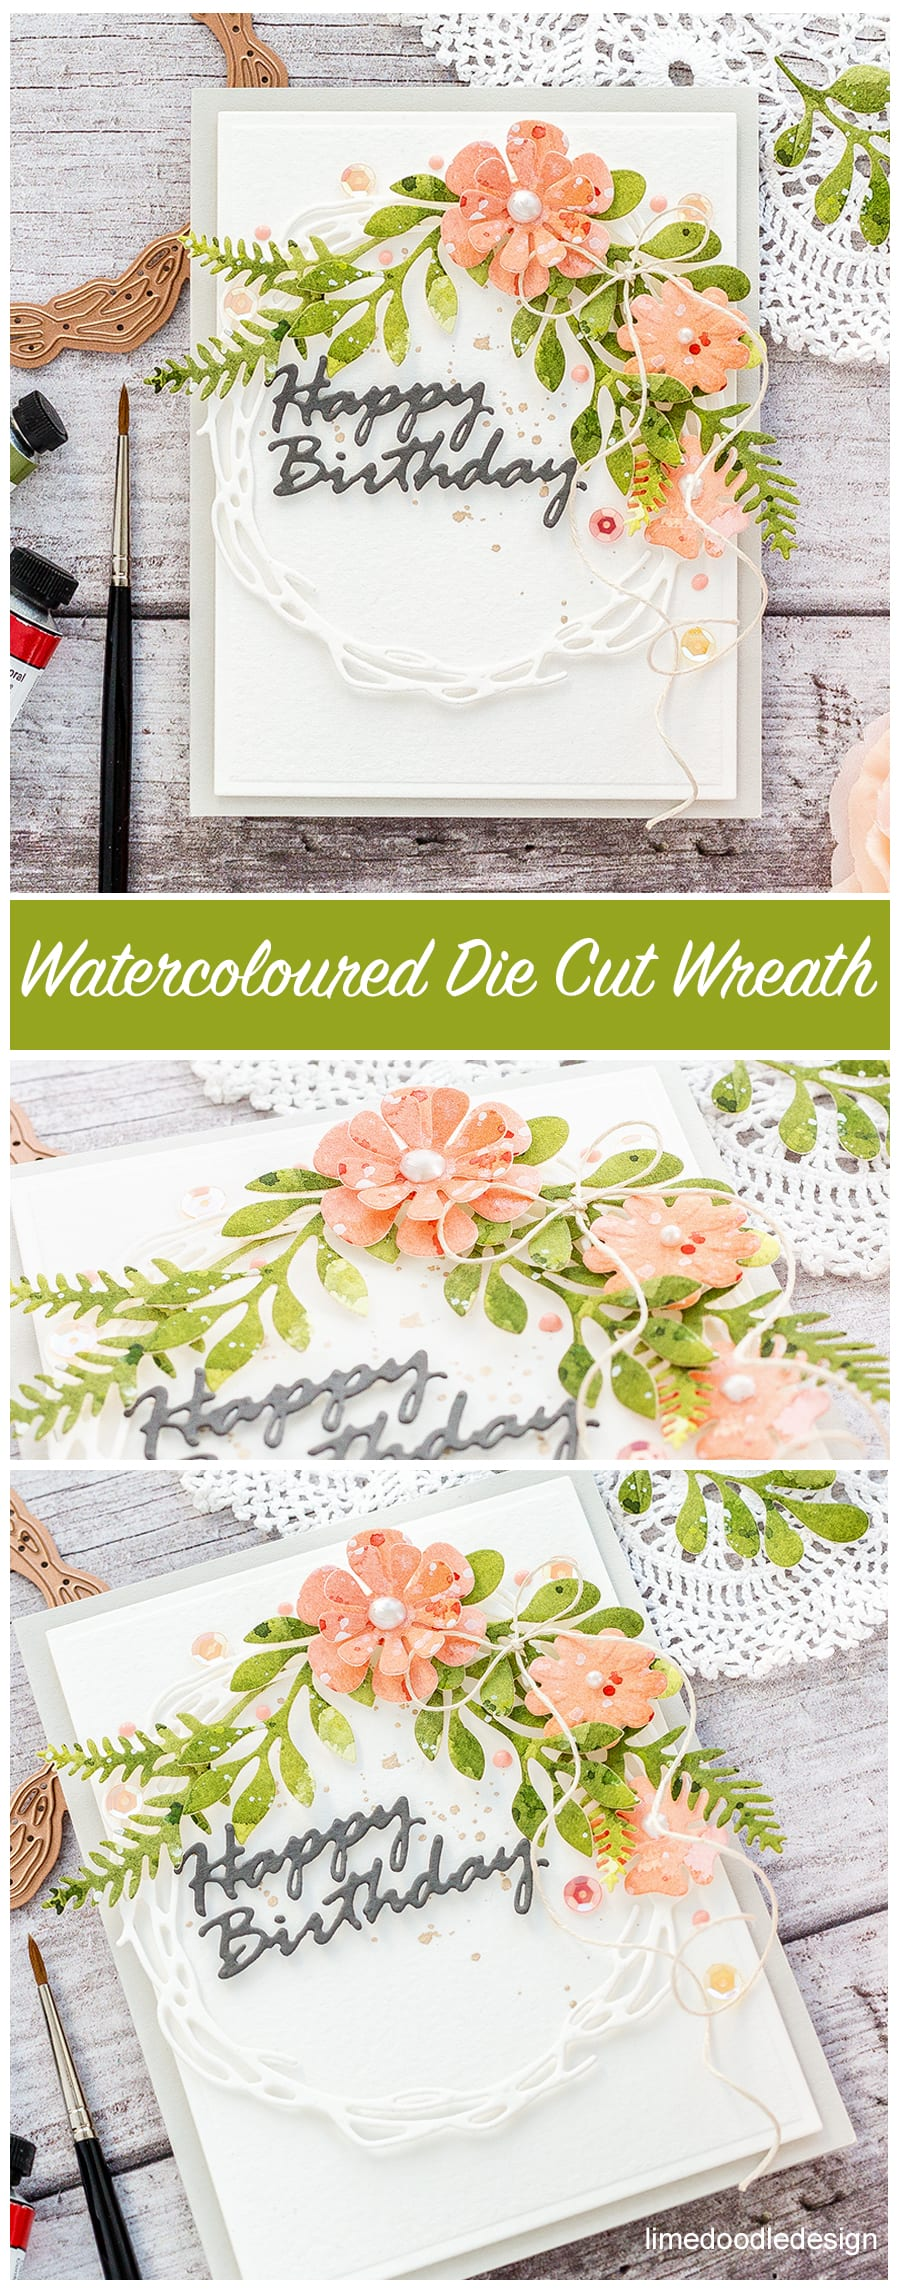 Video tutorial - watercoloured wreath handmade card by Debby Hughes using new Spellbinders dies. Find out more here: https://limedoodledesign.com/2018/02/video-watercoloured-die-cut-wreath/